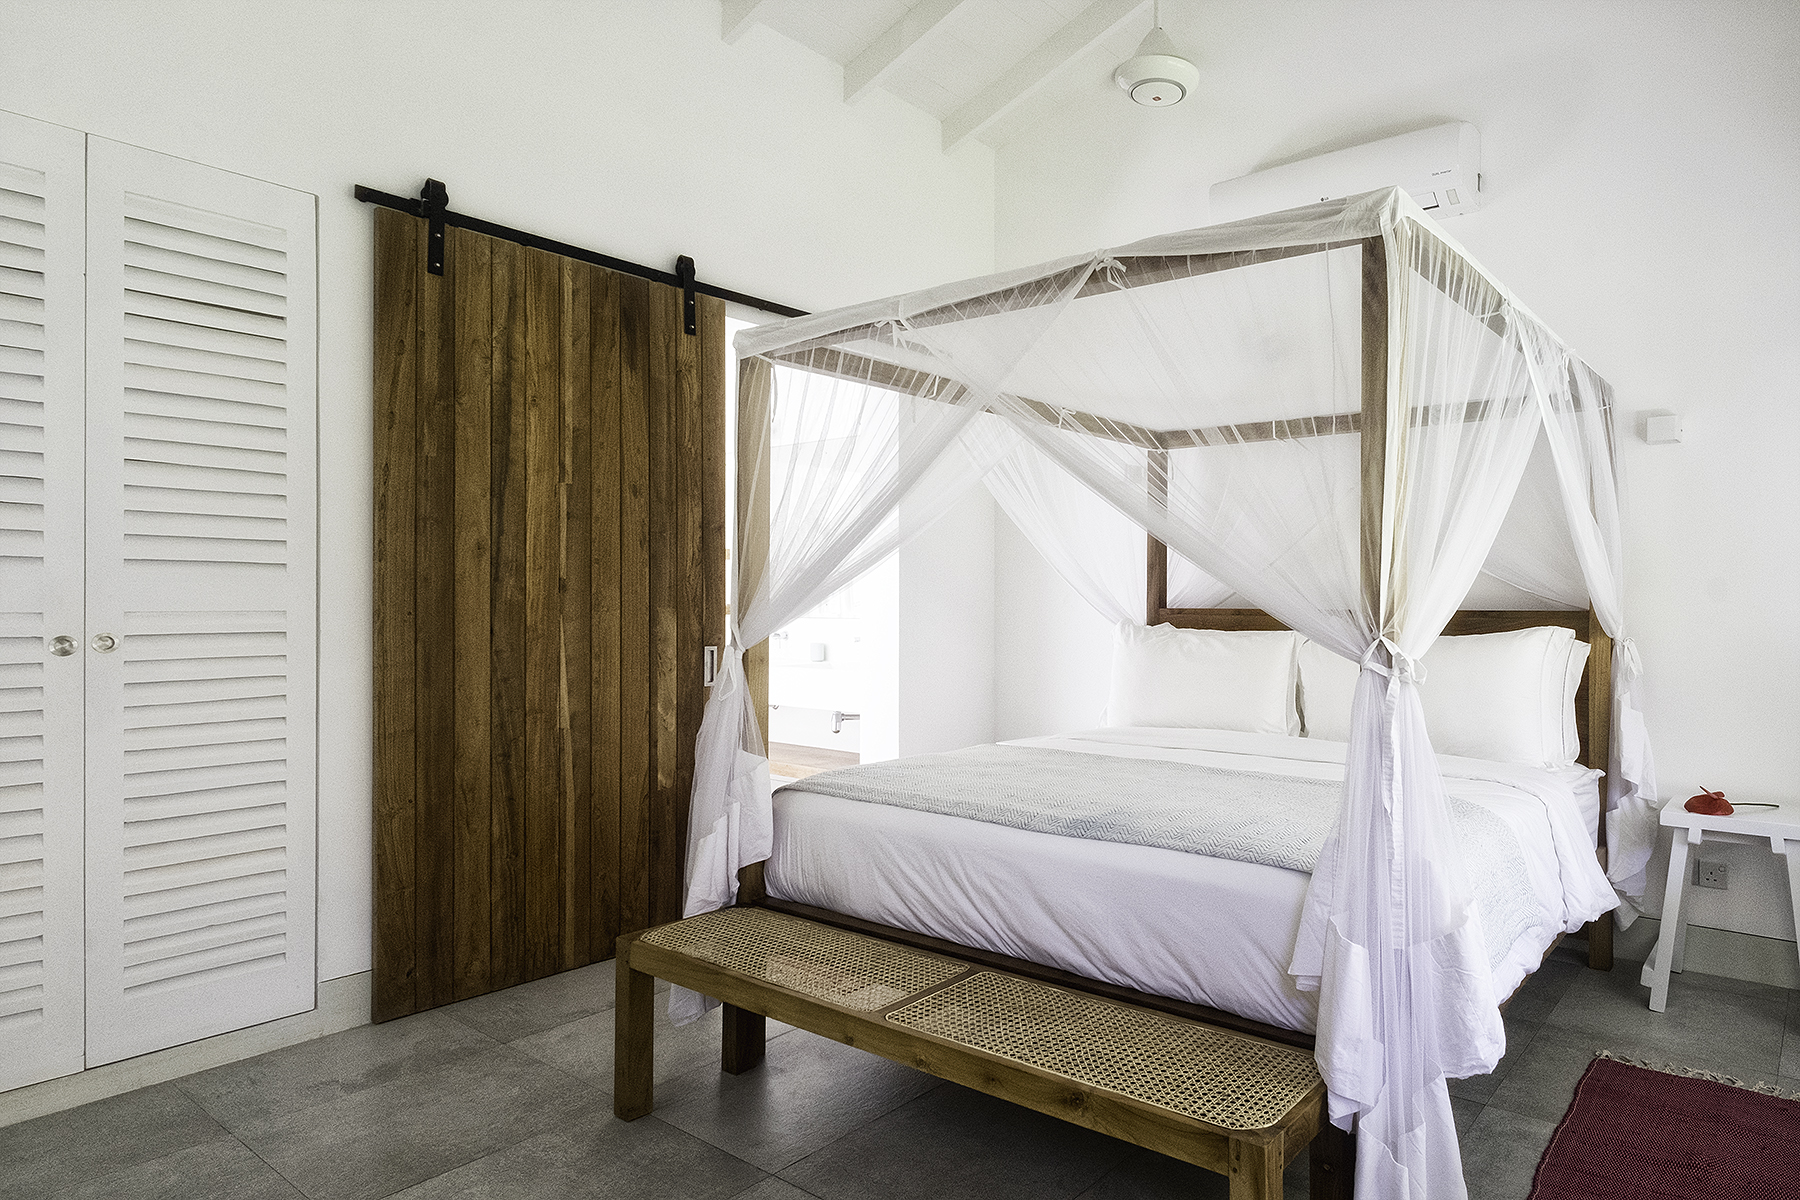 Bedroom 3 with courtyard views